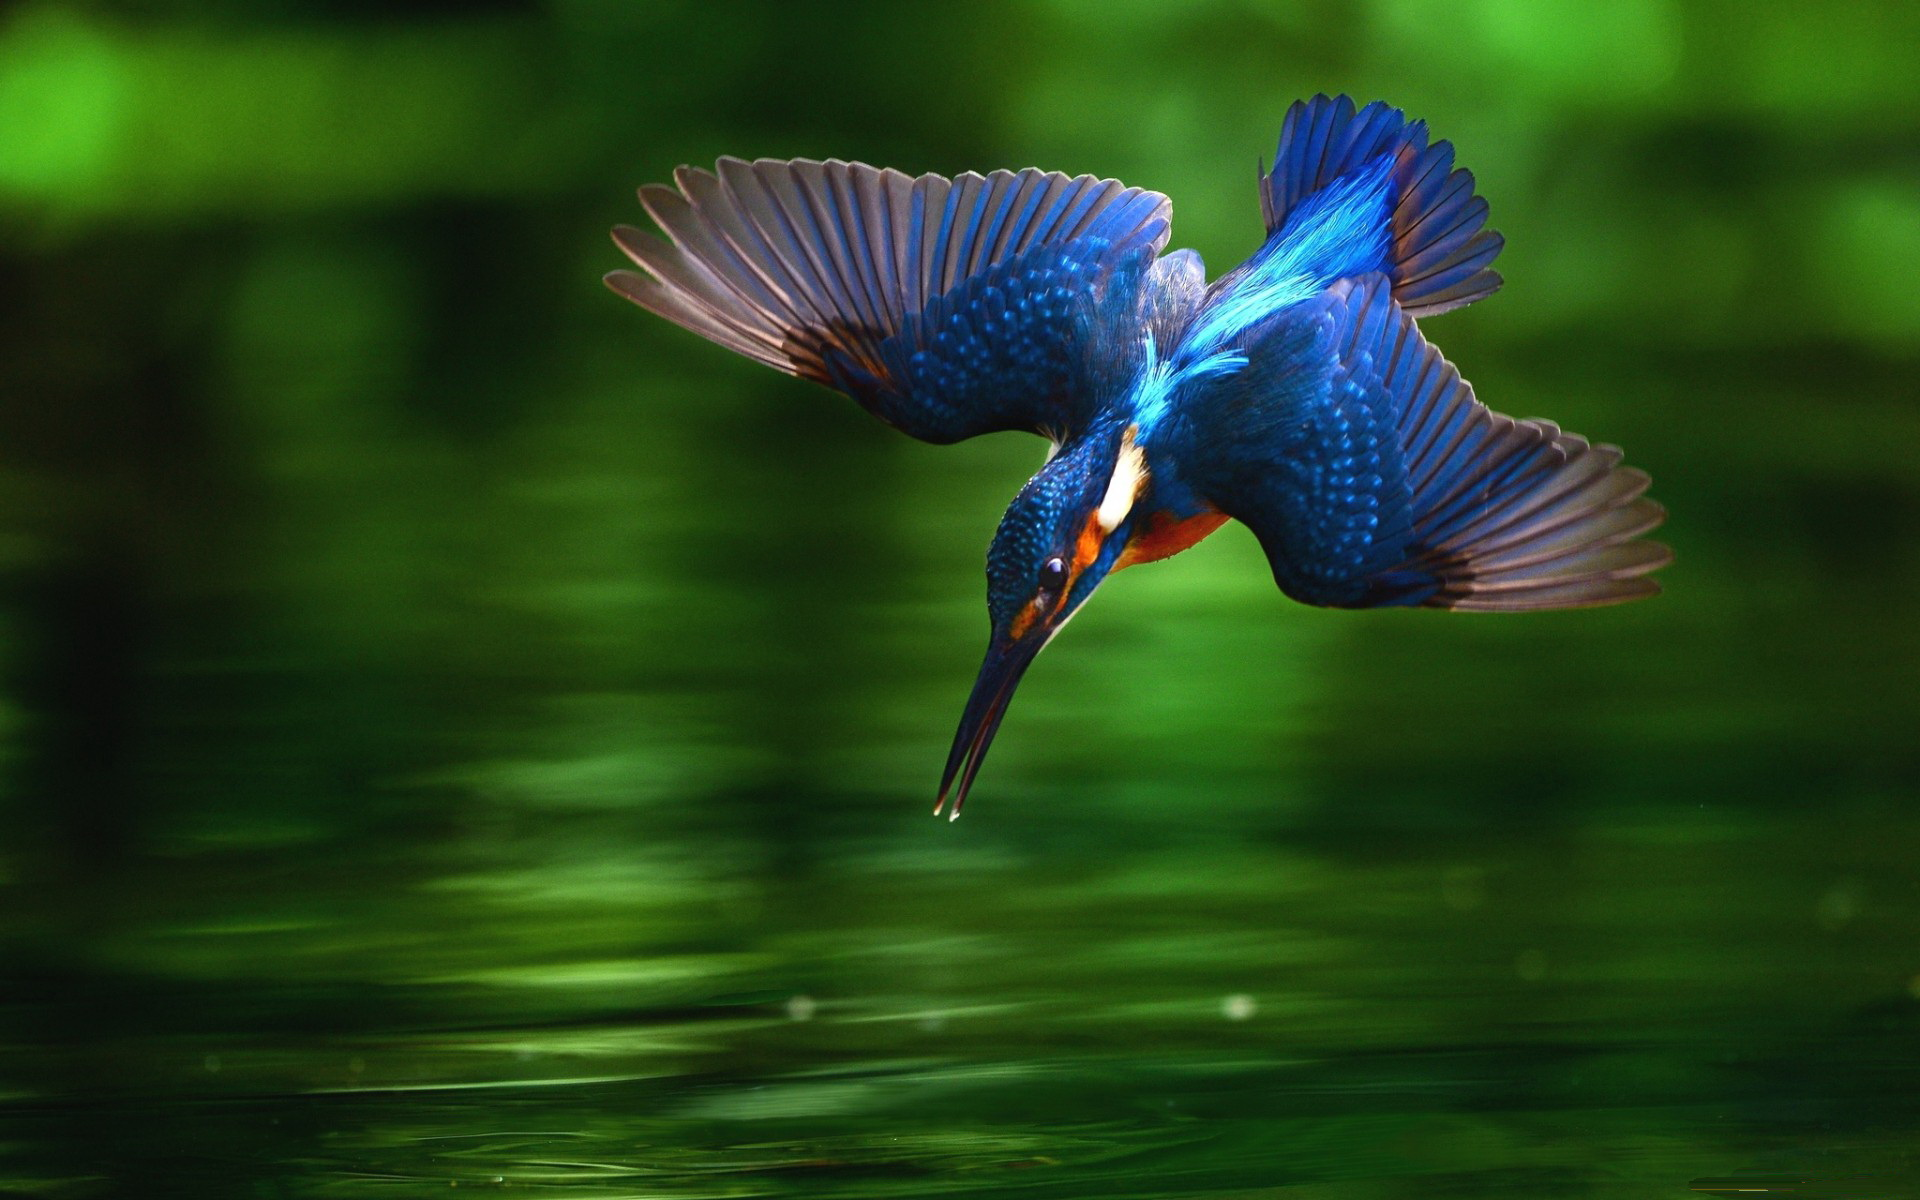 Kingfisher Wallpapers: Backgrounds - Wallpaper Abyss